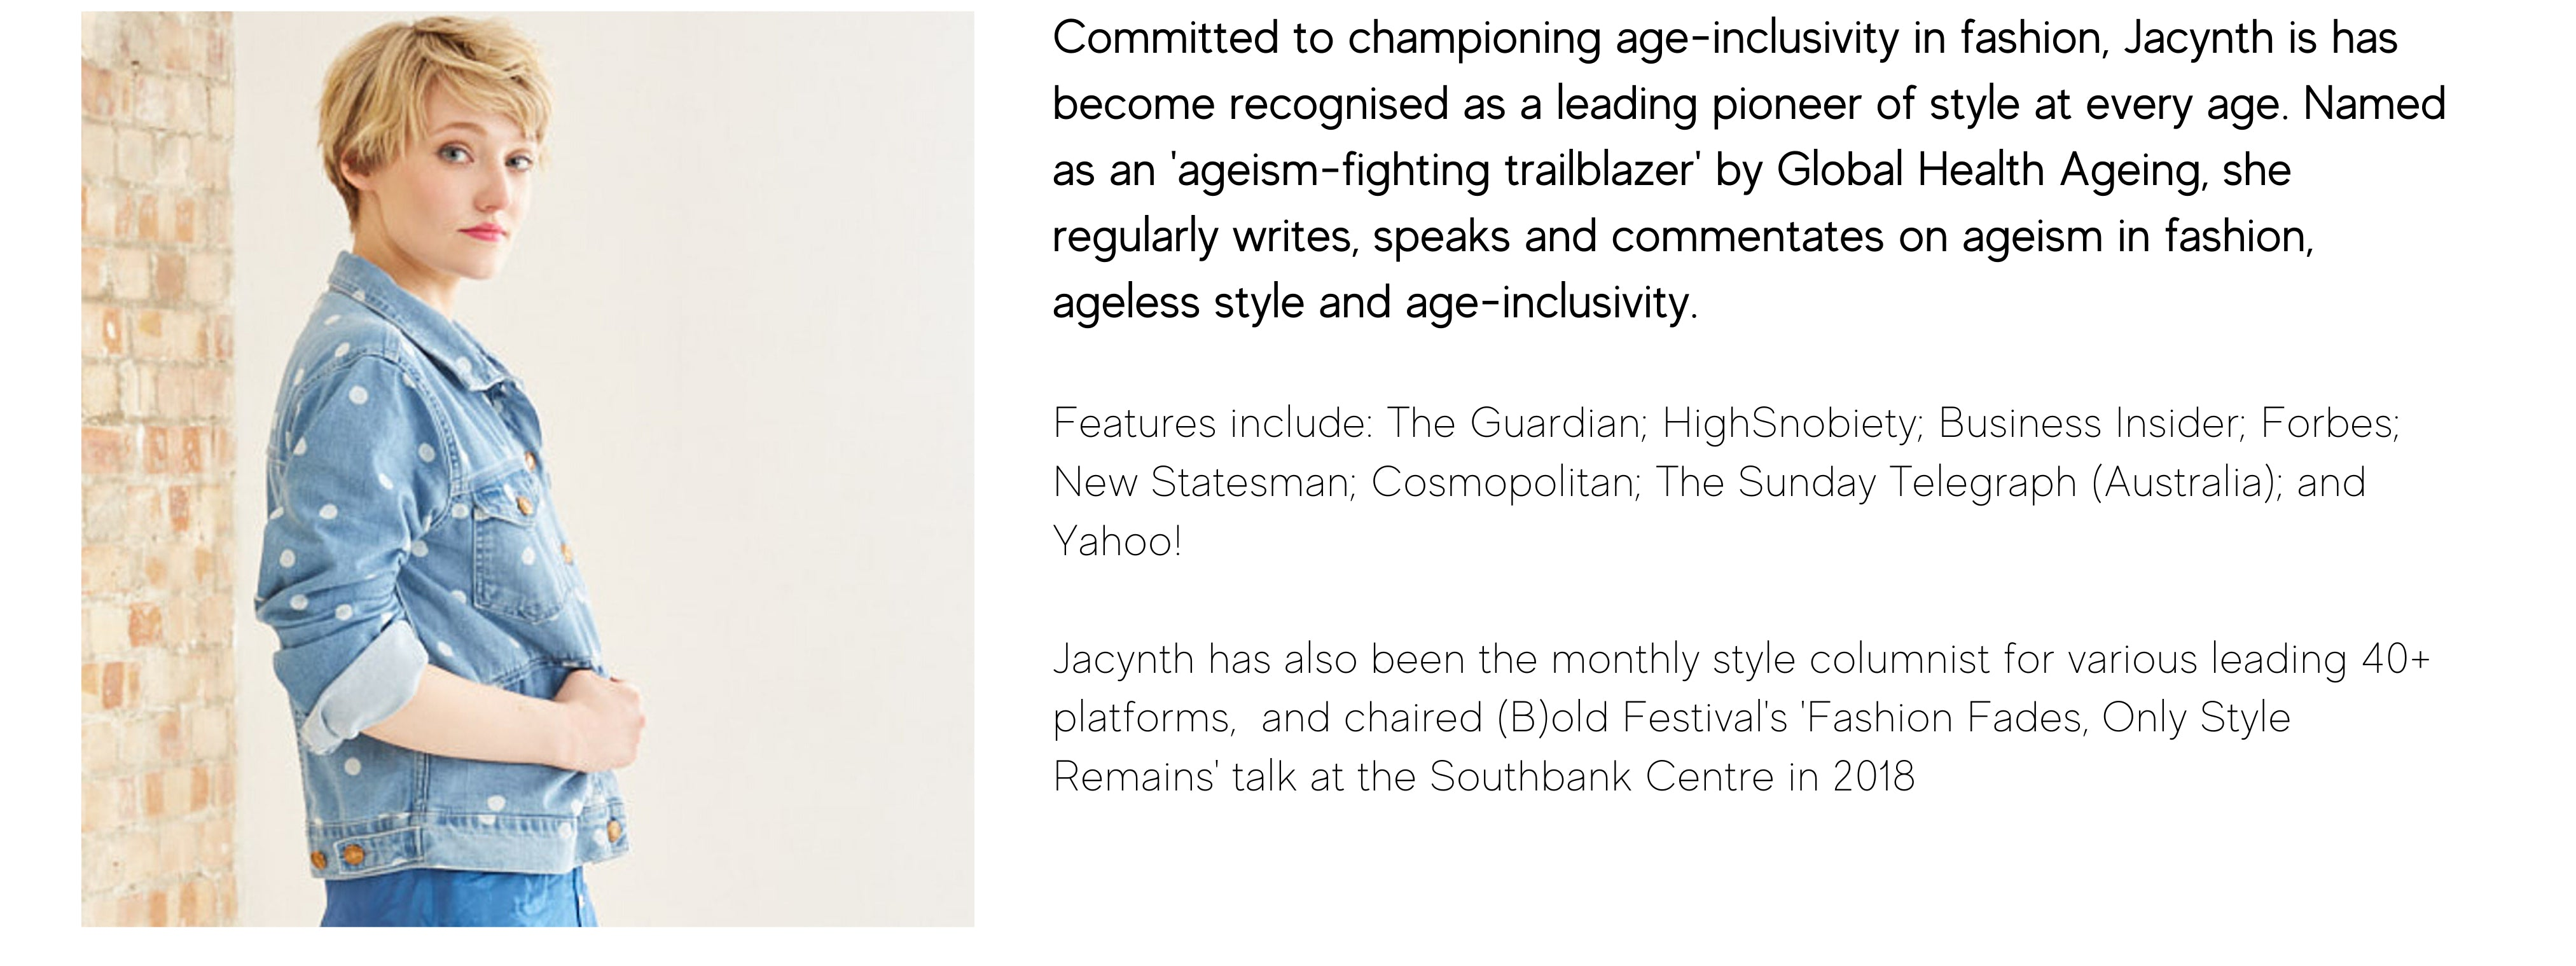 Committed to championing age-inclusivity in fashion, Jacynth is has become recognised as a leading pioneer of style at every age. Named as an 'ageism-fighting trailblazer' by Global Health Ageing, she regularly writes, speaks and commentates on ageism in fashion, ageless style and age-inclusivity.  Features include: The Guardian; HighSnobiety; Business Insider; Forbes; New Statesman; Cosmopolitan; The Sunday Telegraph (Australia); and Yahoo!  Jacynth has also been the monthly style columnist for various leading 40+ platforms,  and chaired (B)old Festival's 'Fashion Fades, Only Style Remains' talk at the Southbank Centre in 2018